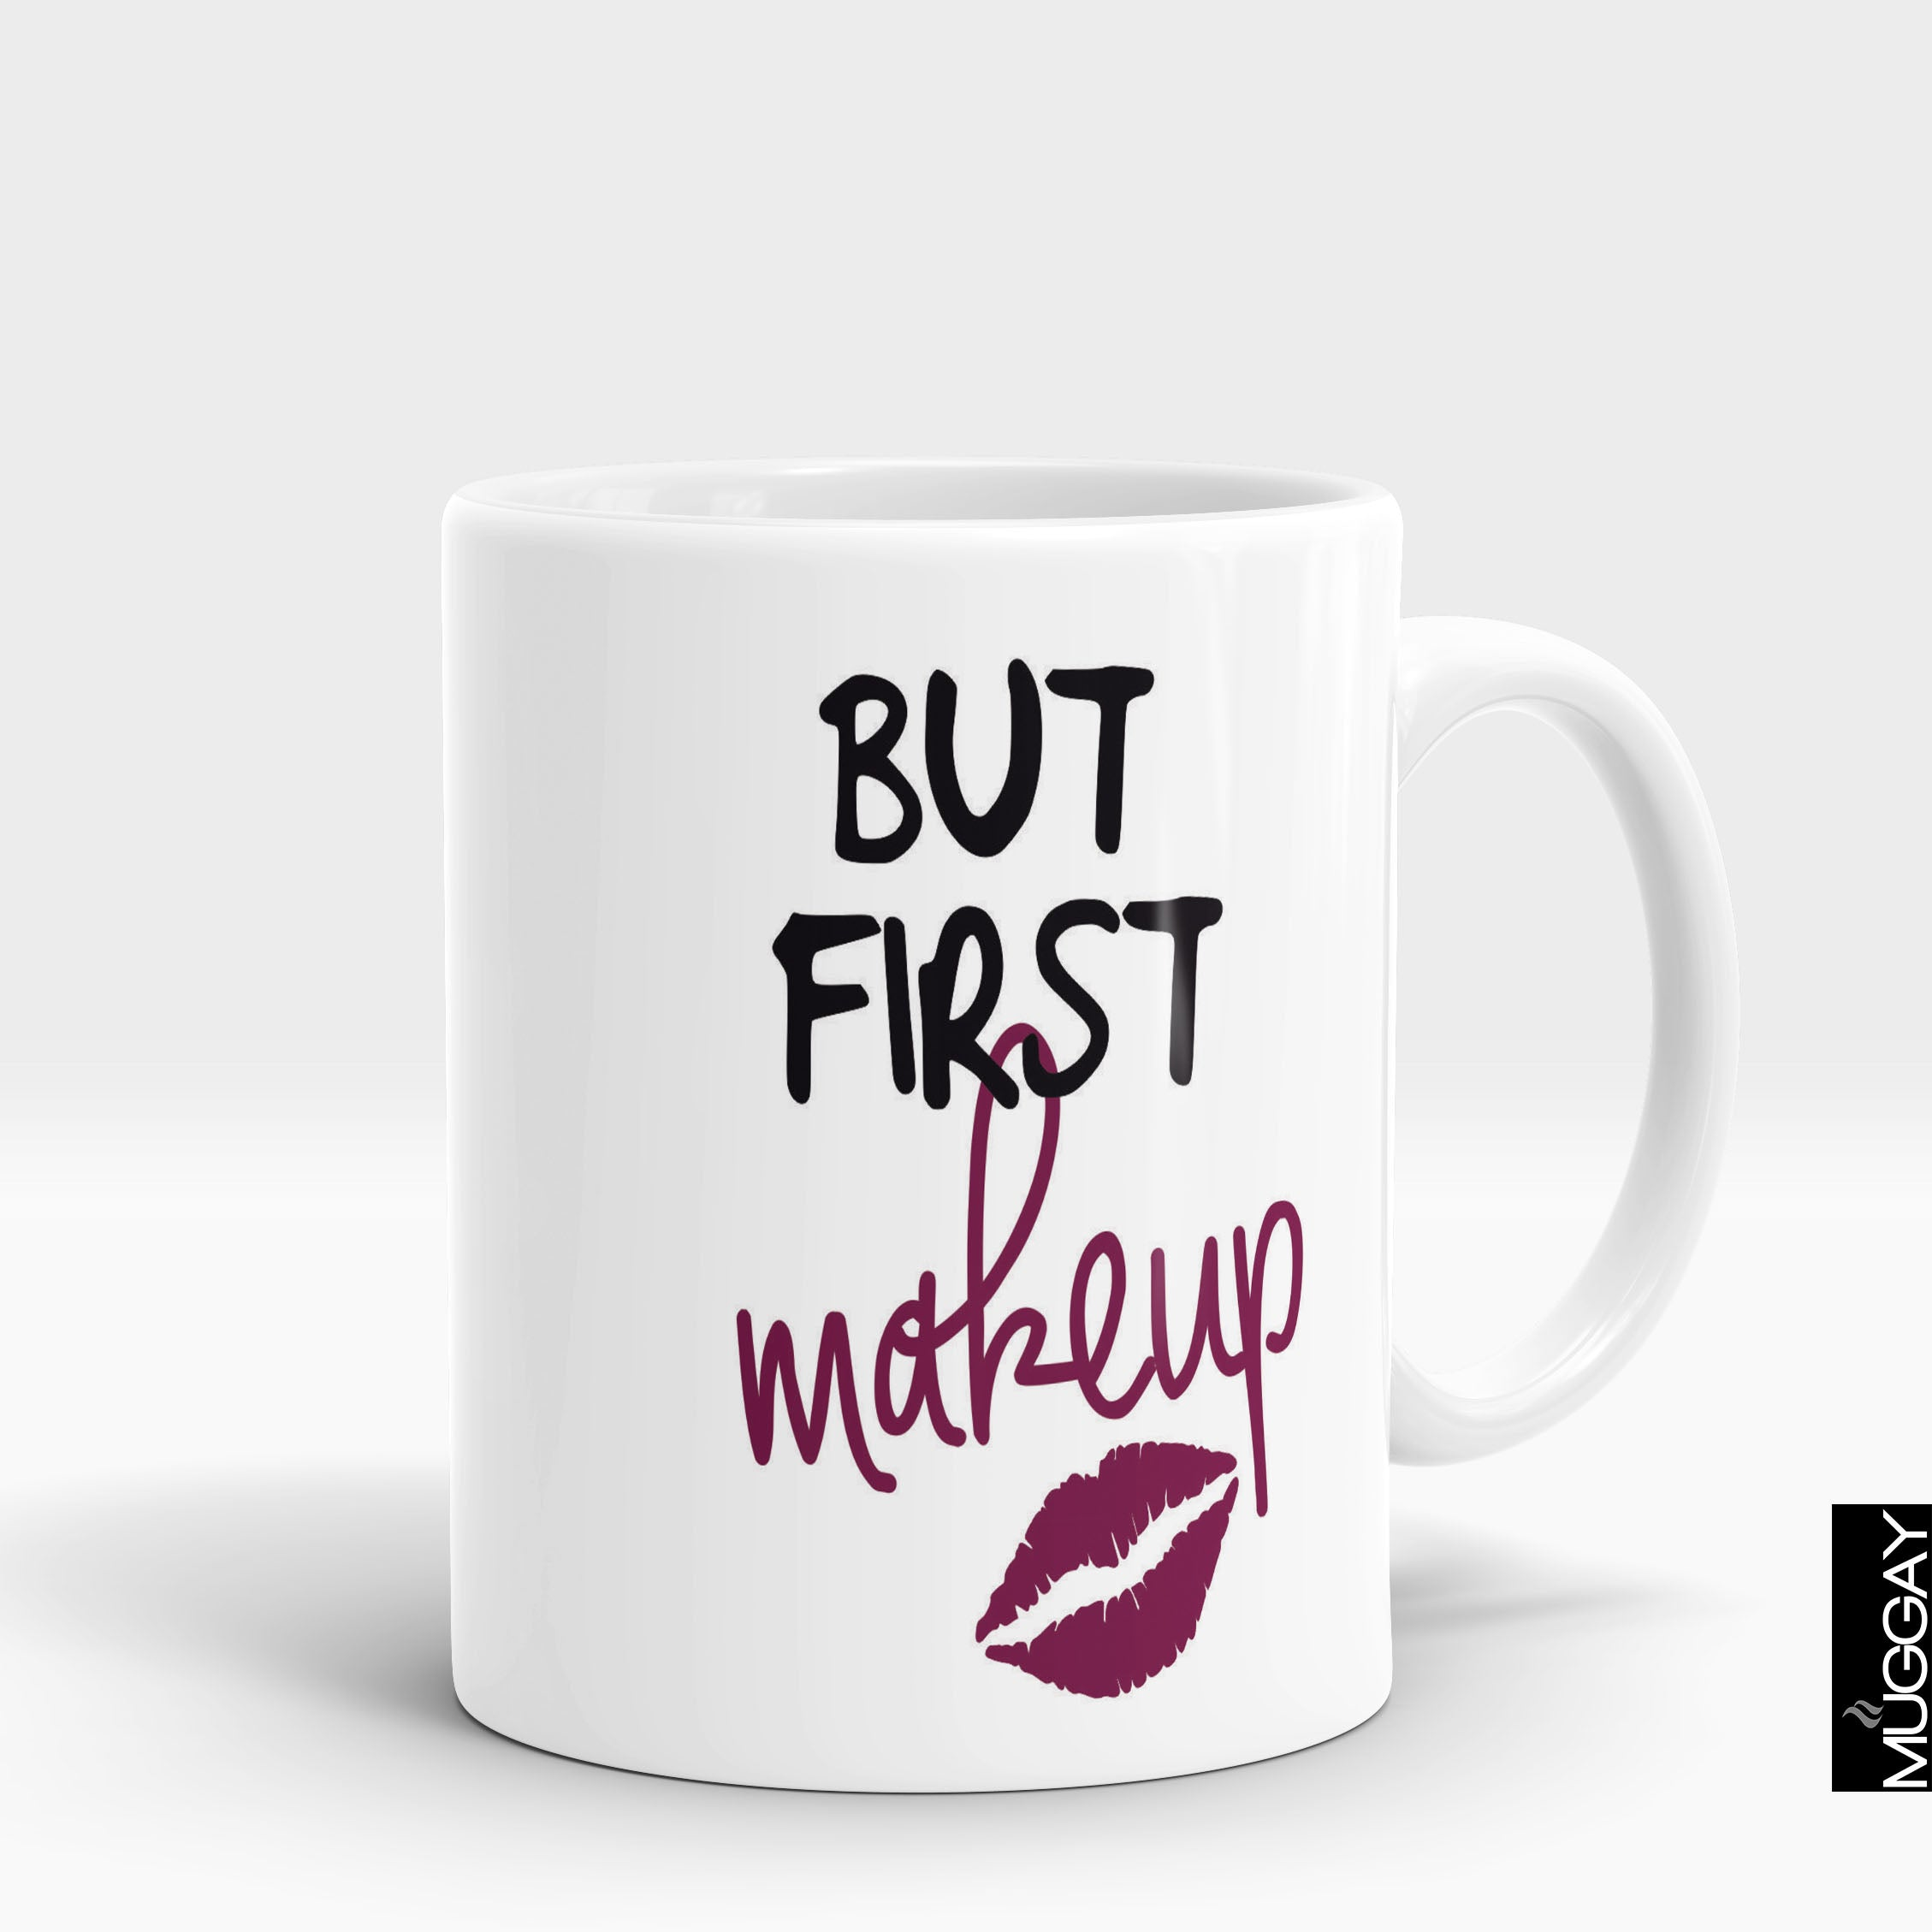 Makeup theme mugs -4